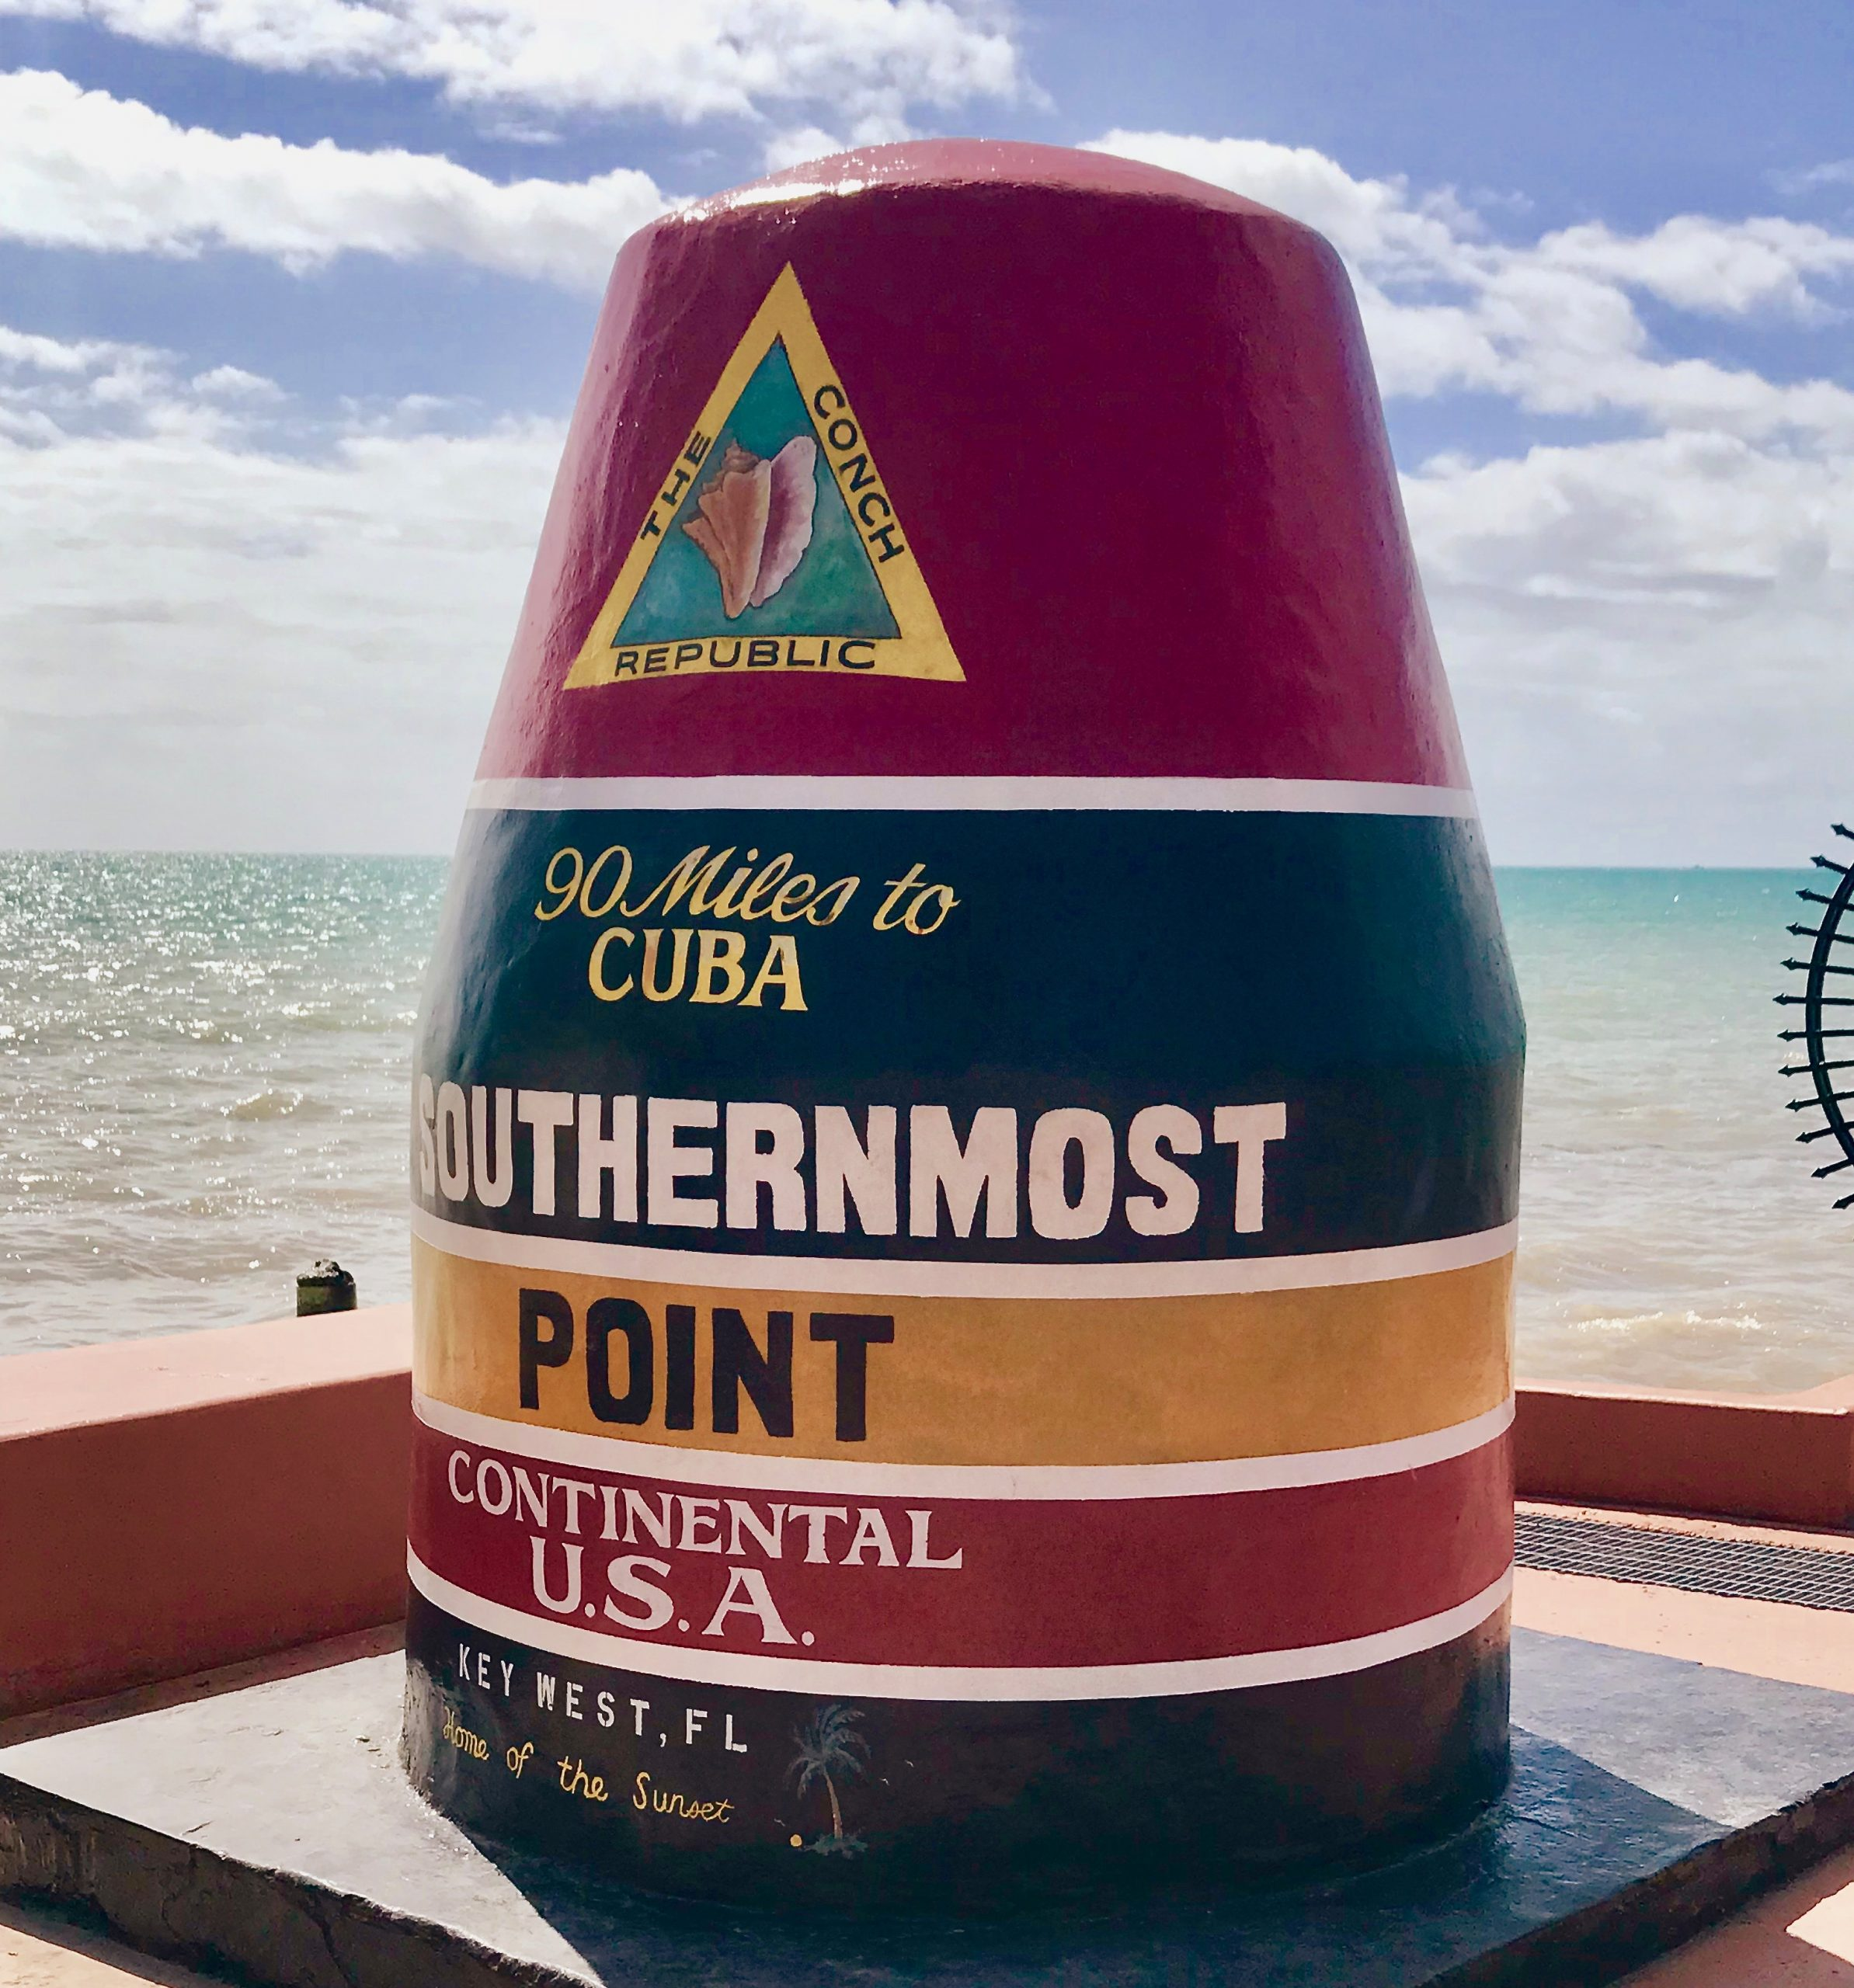 southernmost point marker in key west fl, a super east coast beach town